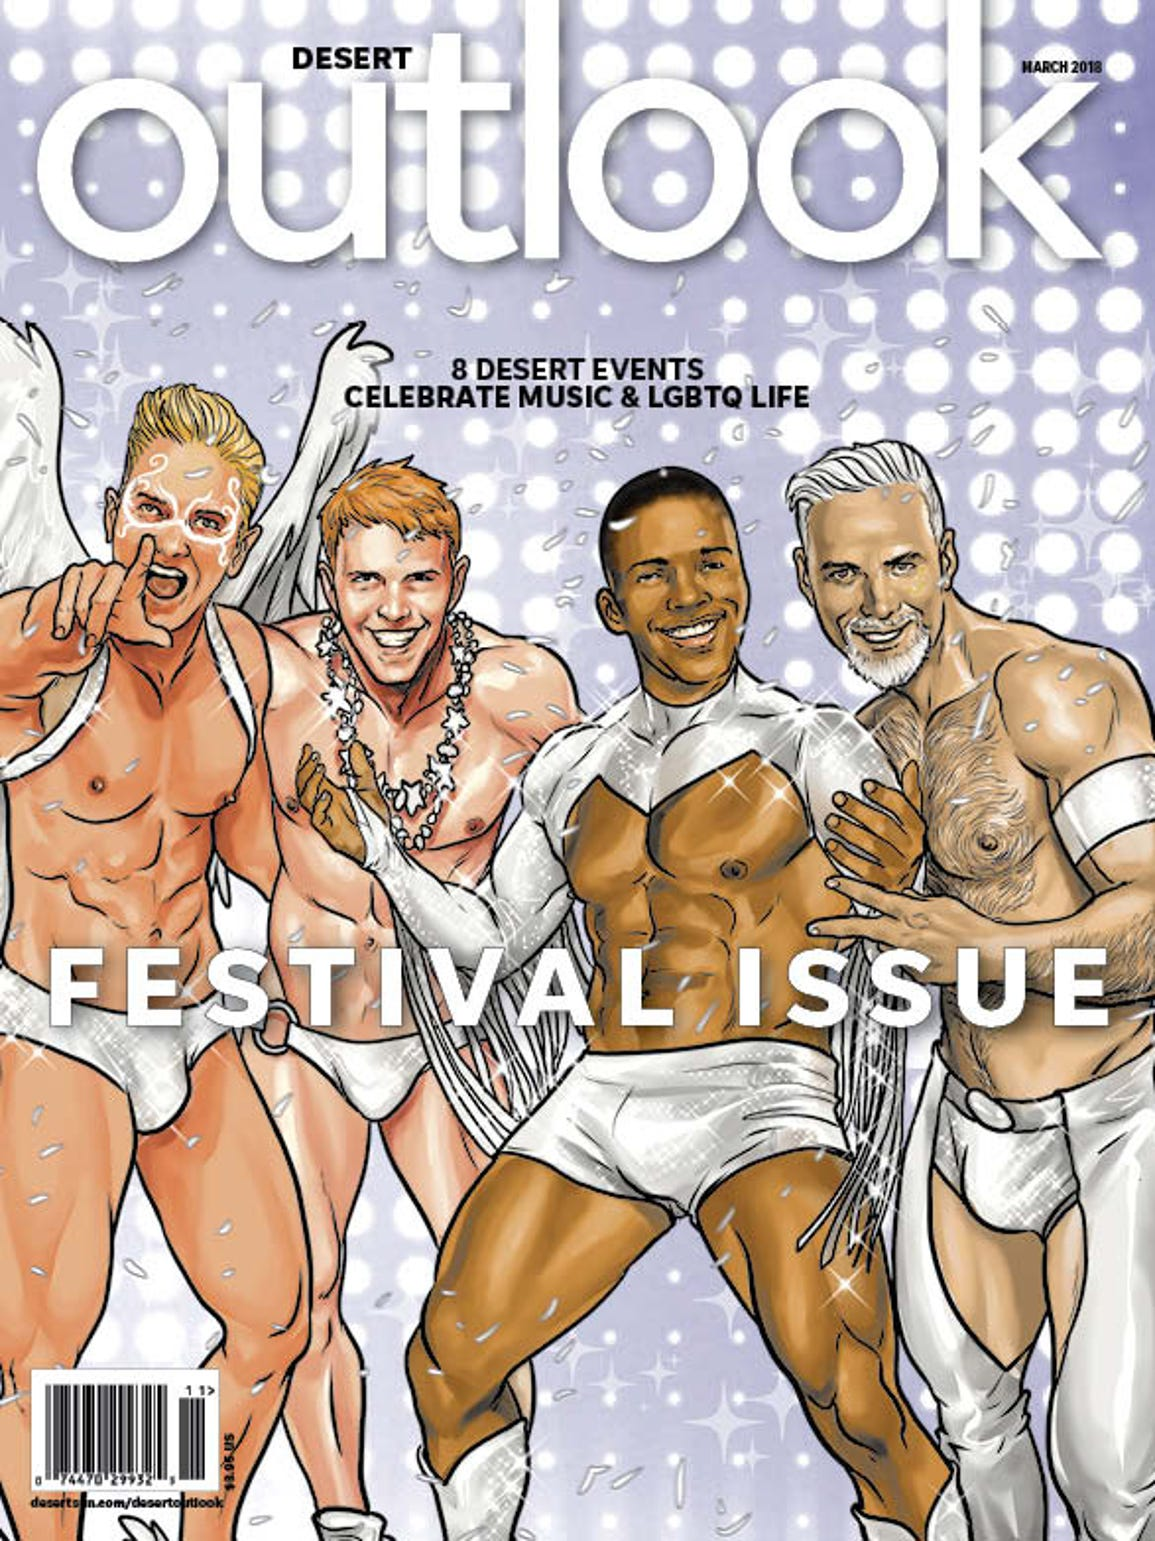 Desert Outlook's March 2018 Festival Issue. Cover image